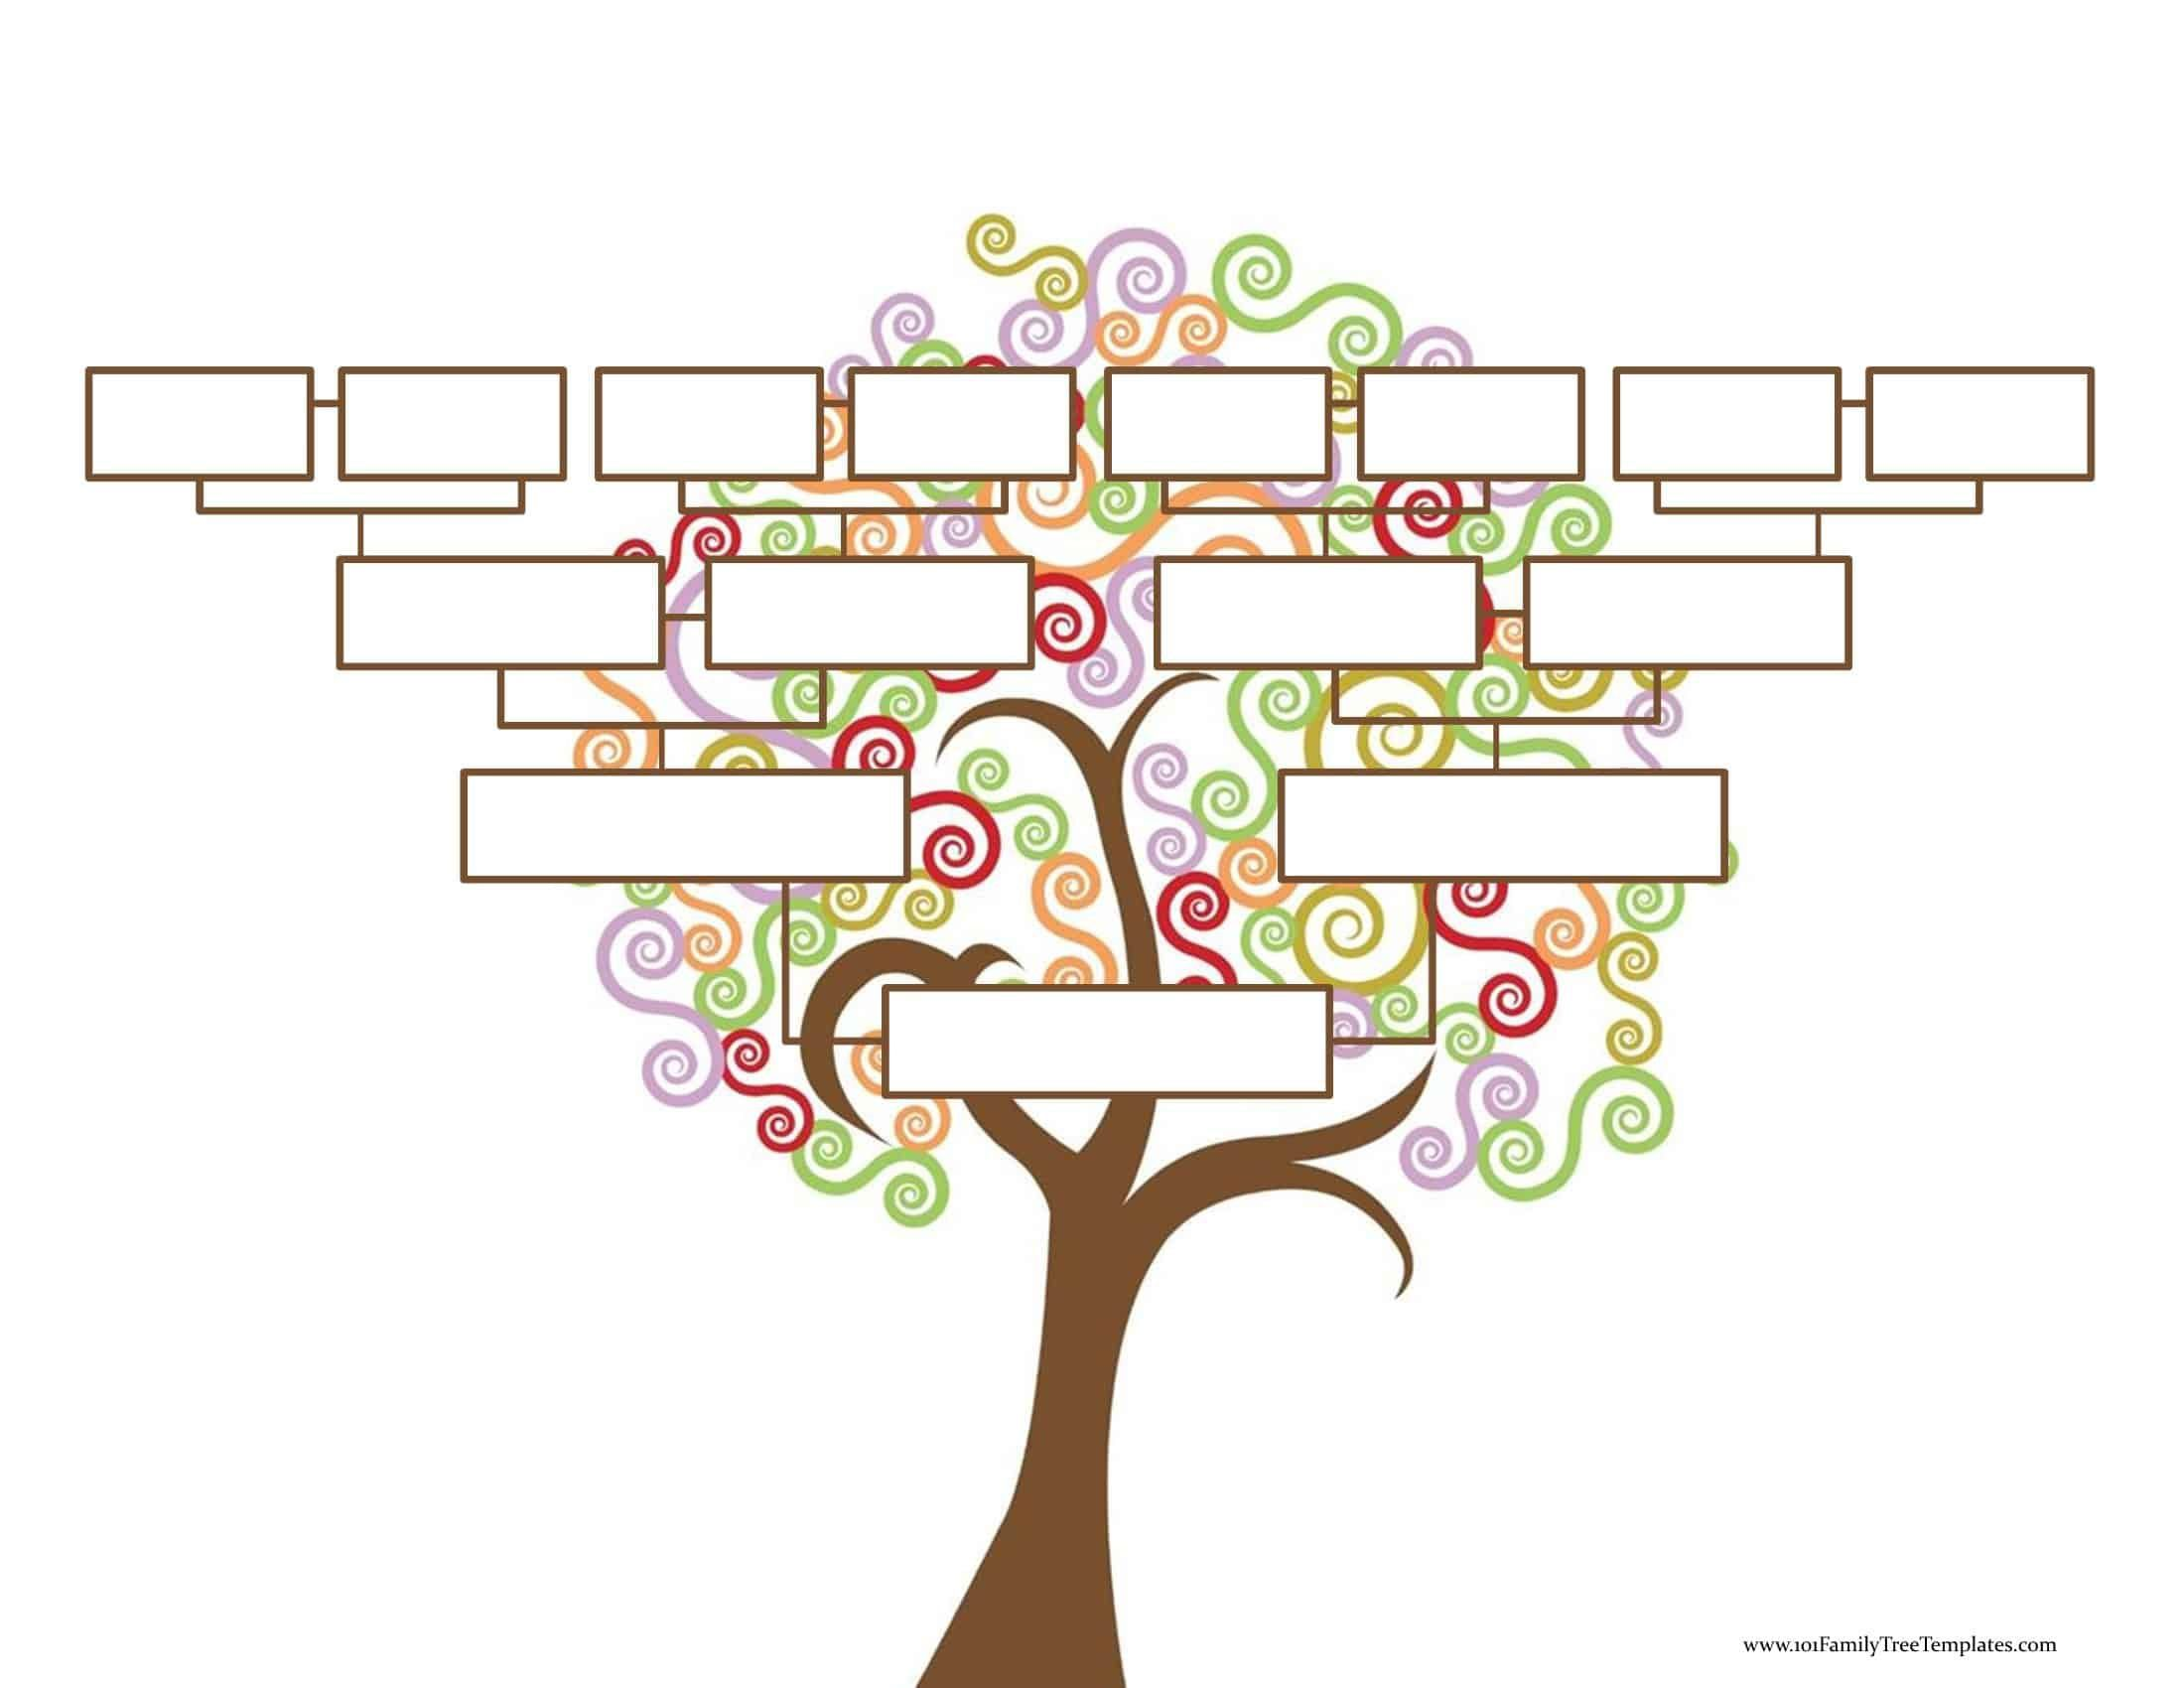 009 Exceptional Free Editable Family Tree Template High Resolution  With Sibling Powerpoint For MacFull